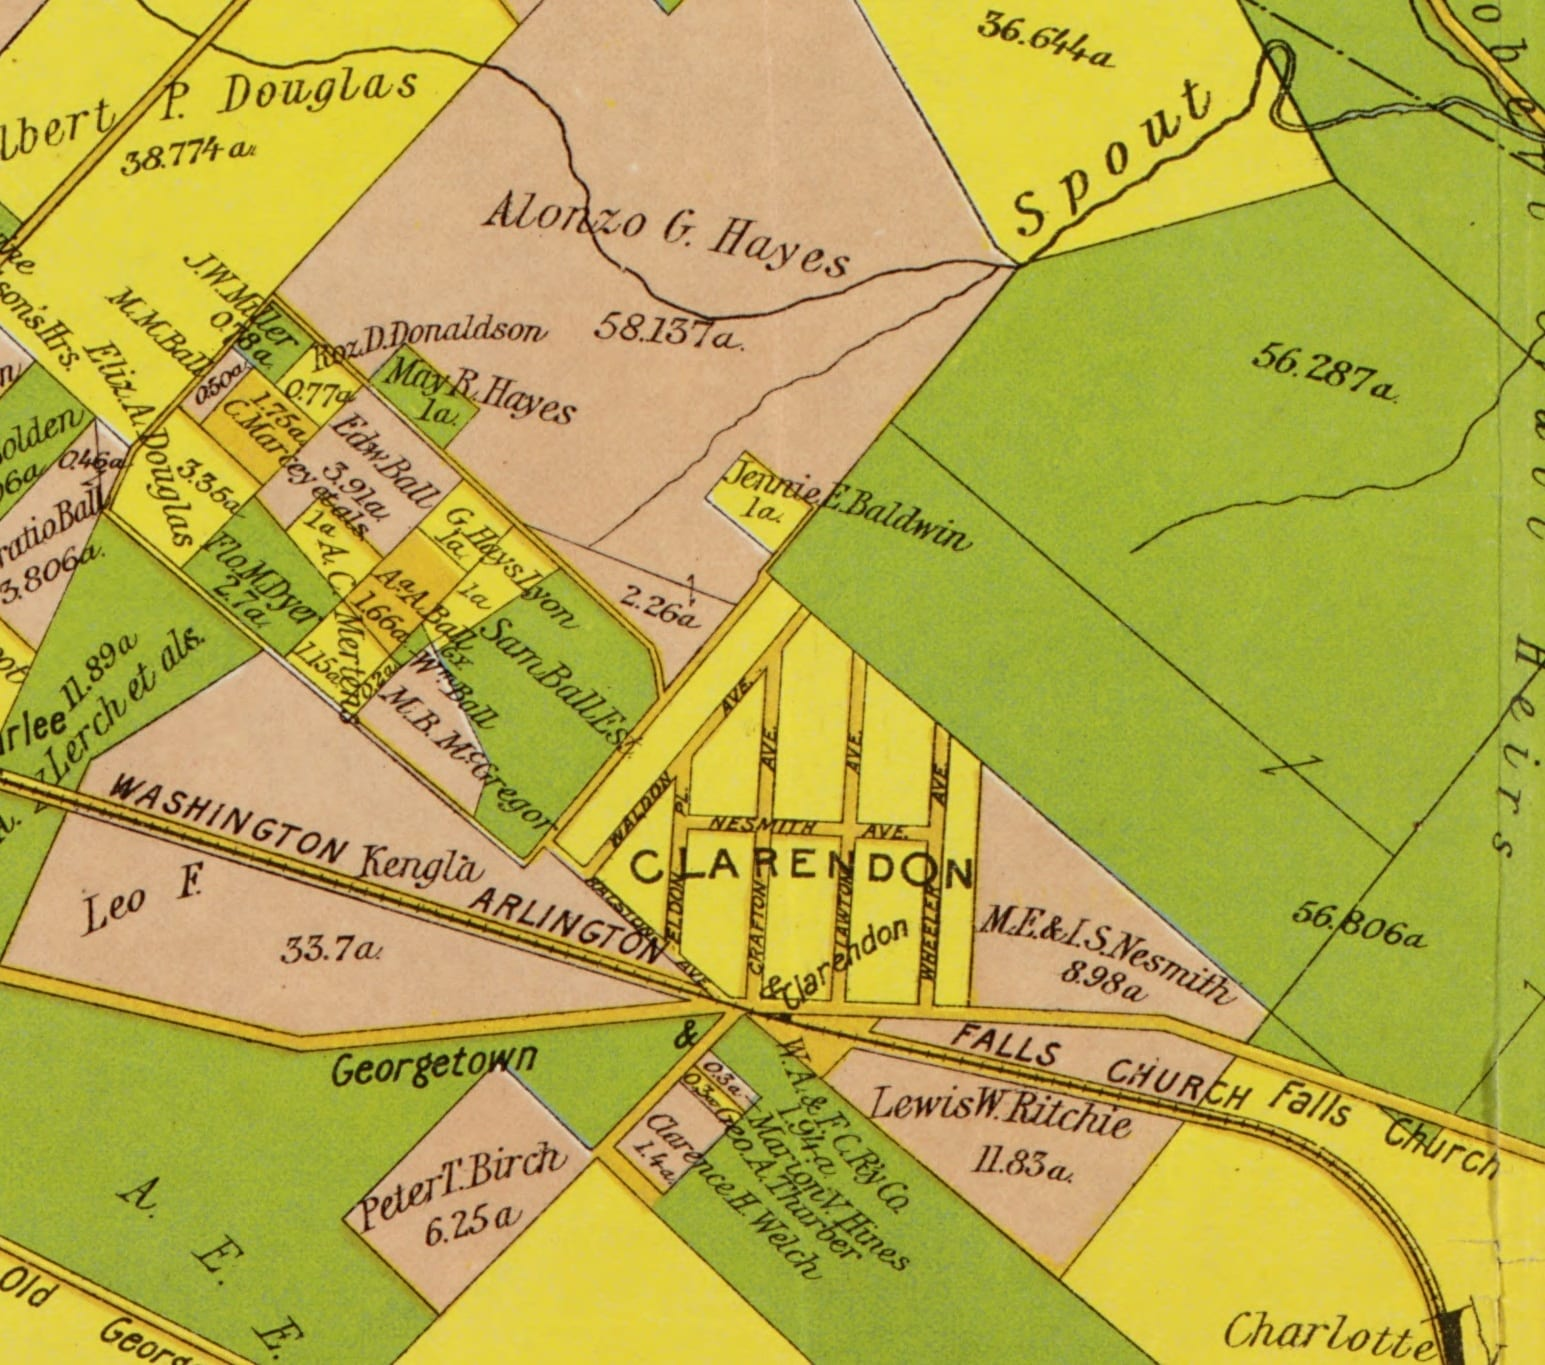 1900 Howell & Taylor map of Arlington showing early Clarendon